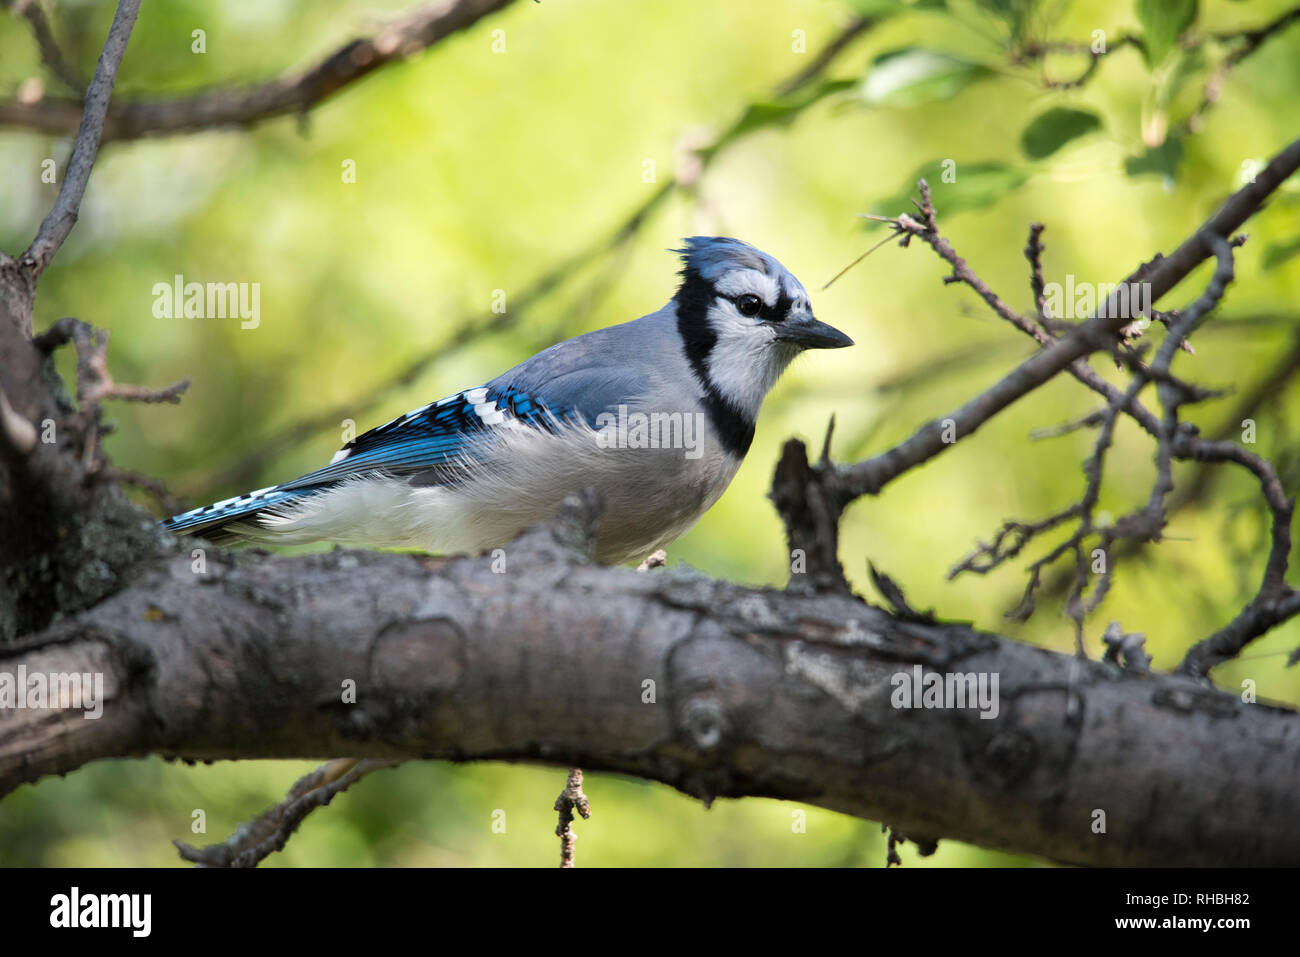 A blue jay sitting on the branch of a tree in summer. Stock Photo